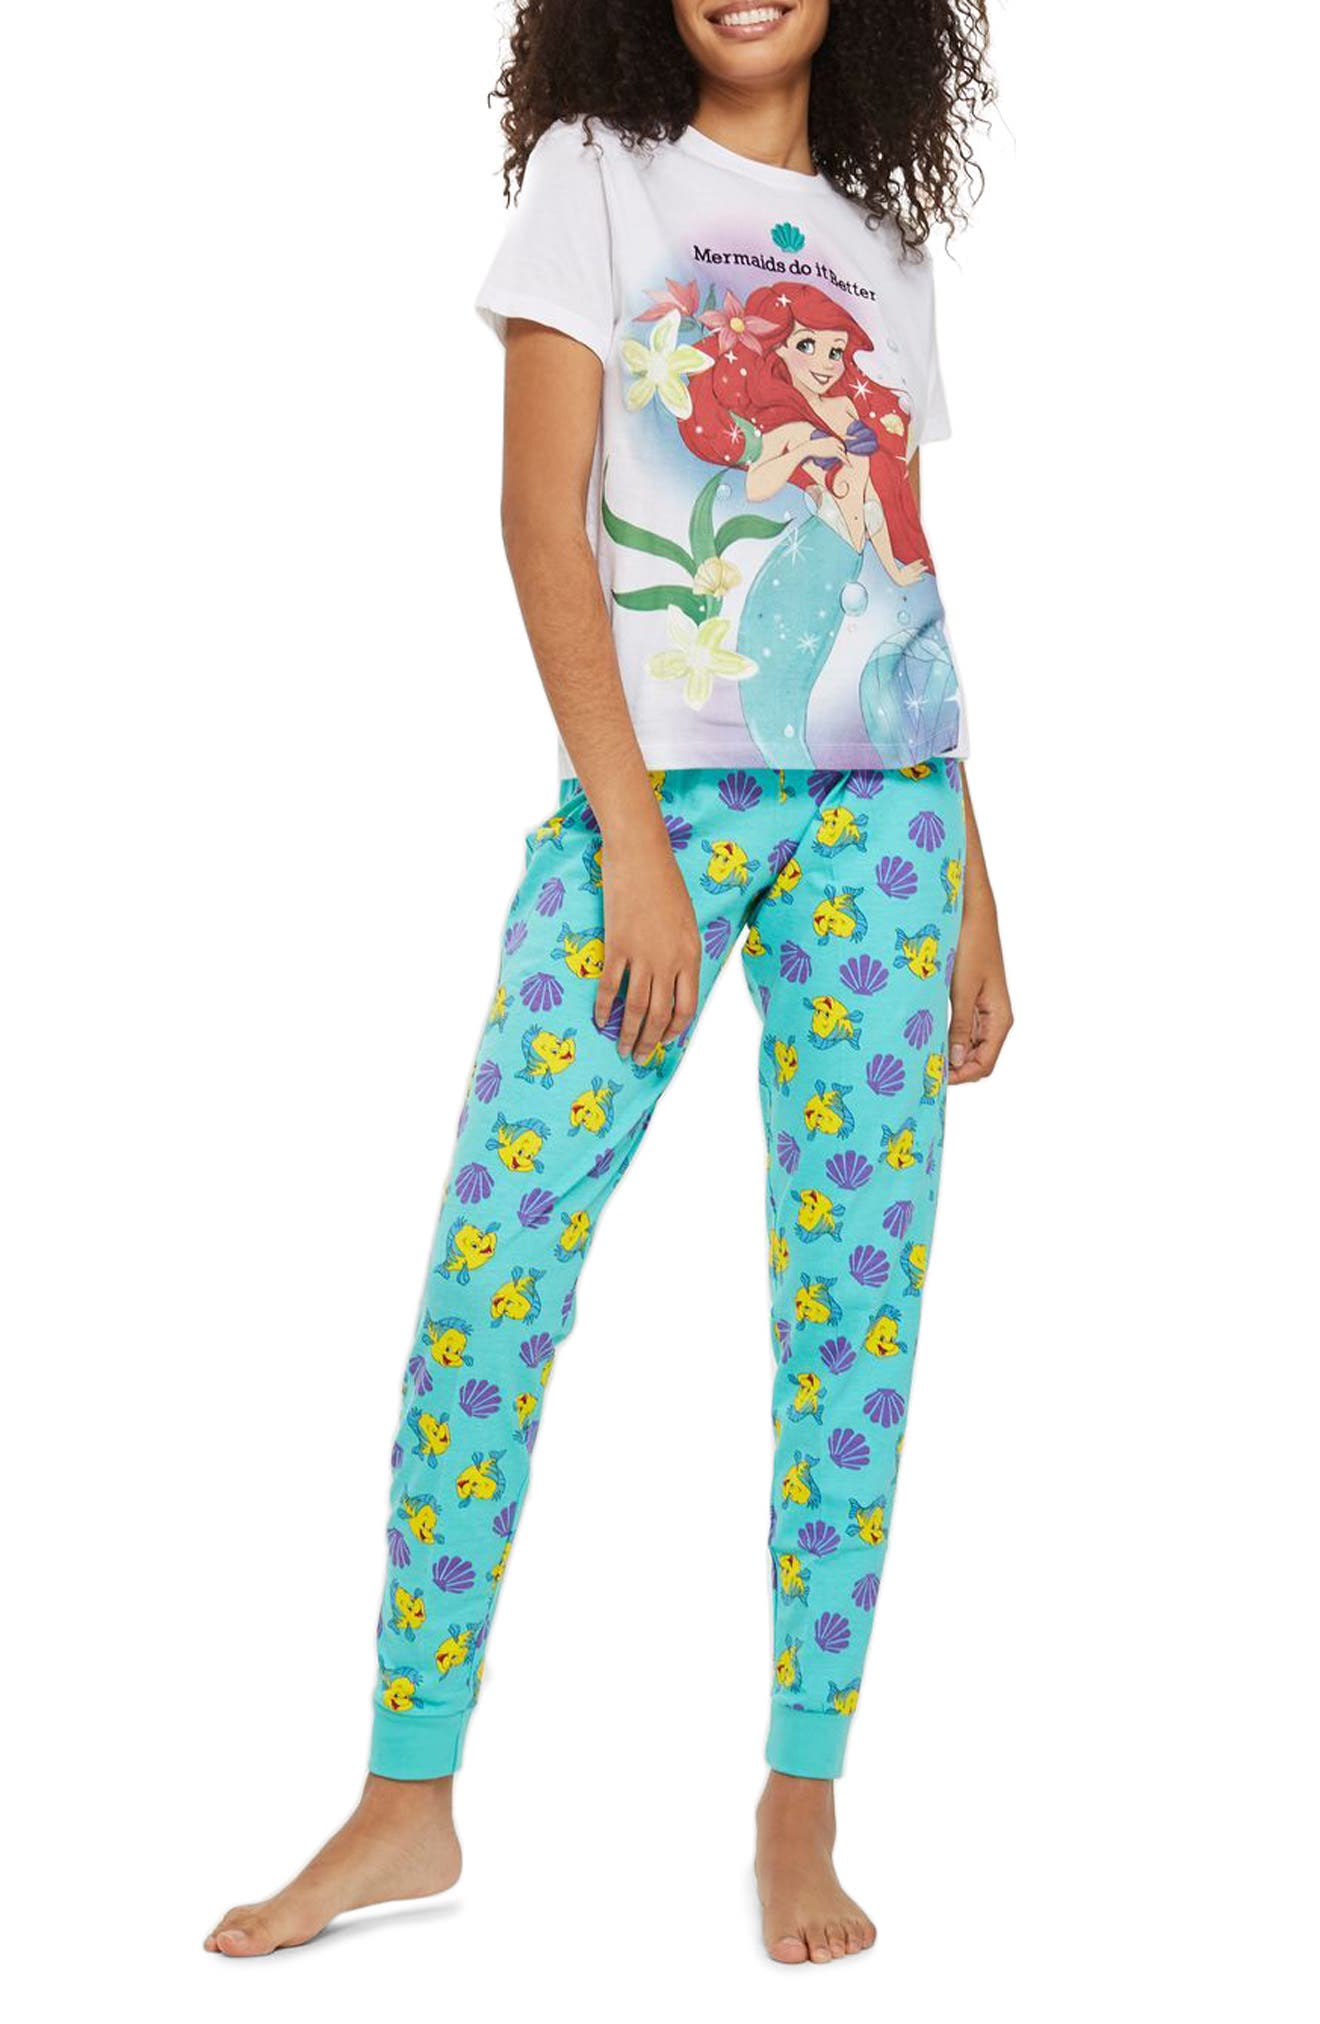 The Little Mermaid - Mermaids Do It Better Pajamas,                             Main thumbnail 1, color,